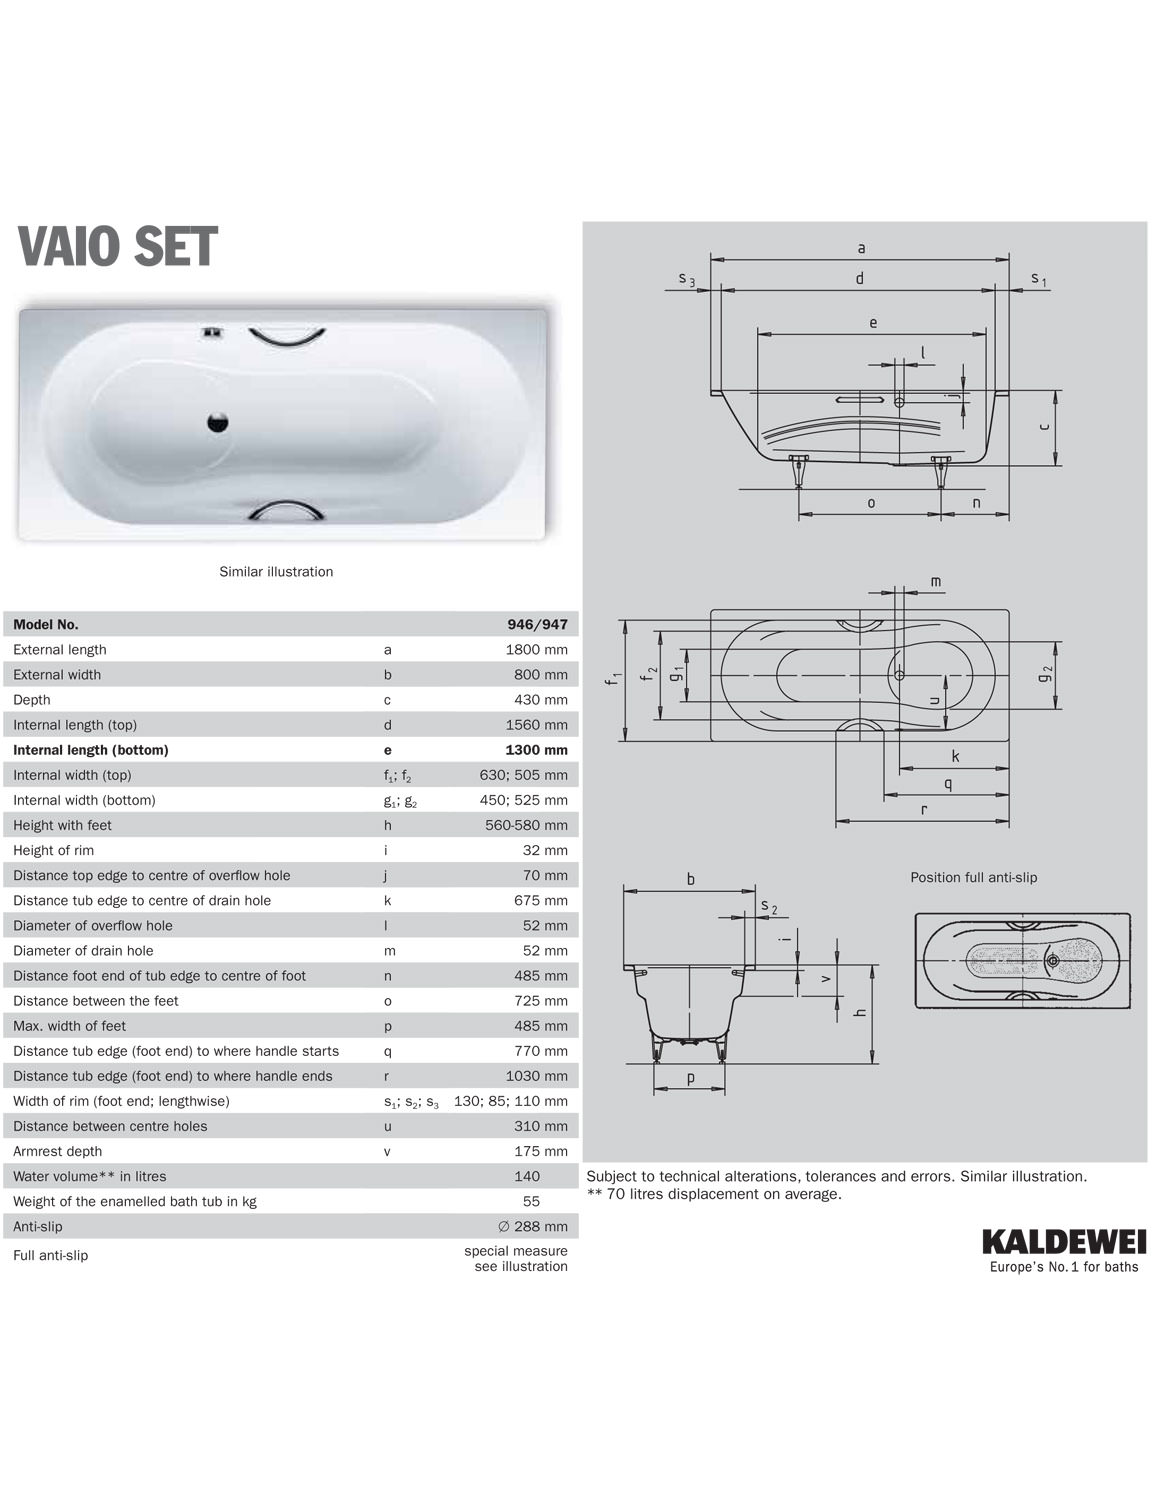 kaldewei ambiente vaio set 946 steel shower bath 1800 x 800mm shower bath 1800 x 800mm technical drawing 16607 234600010001